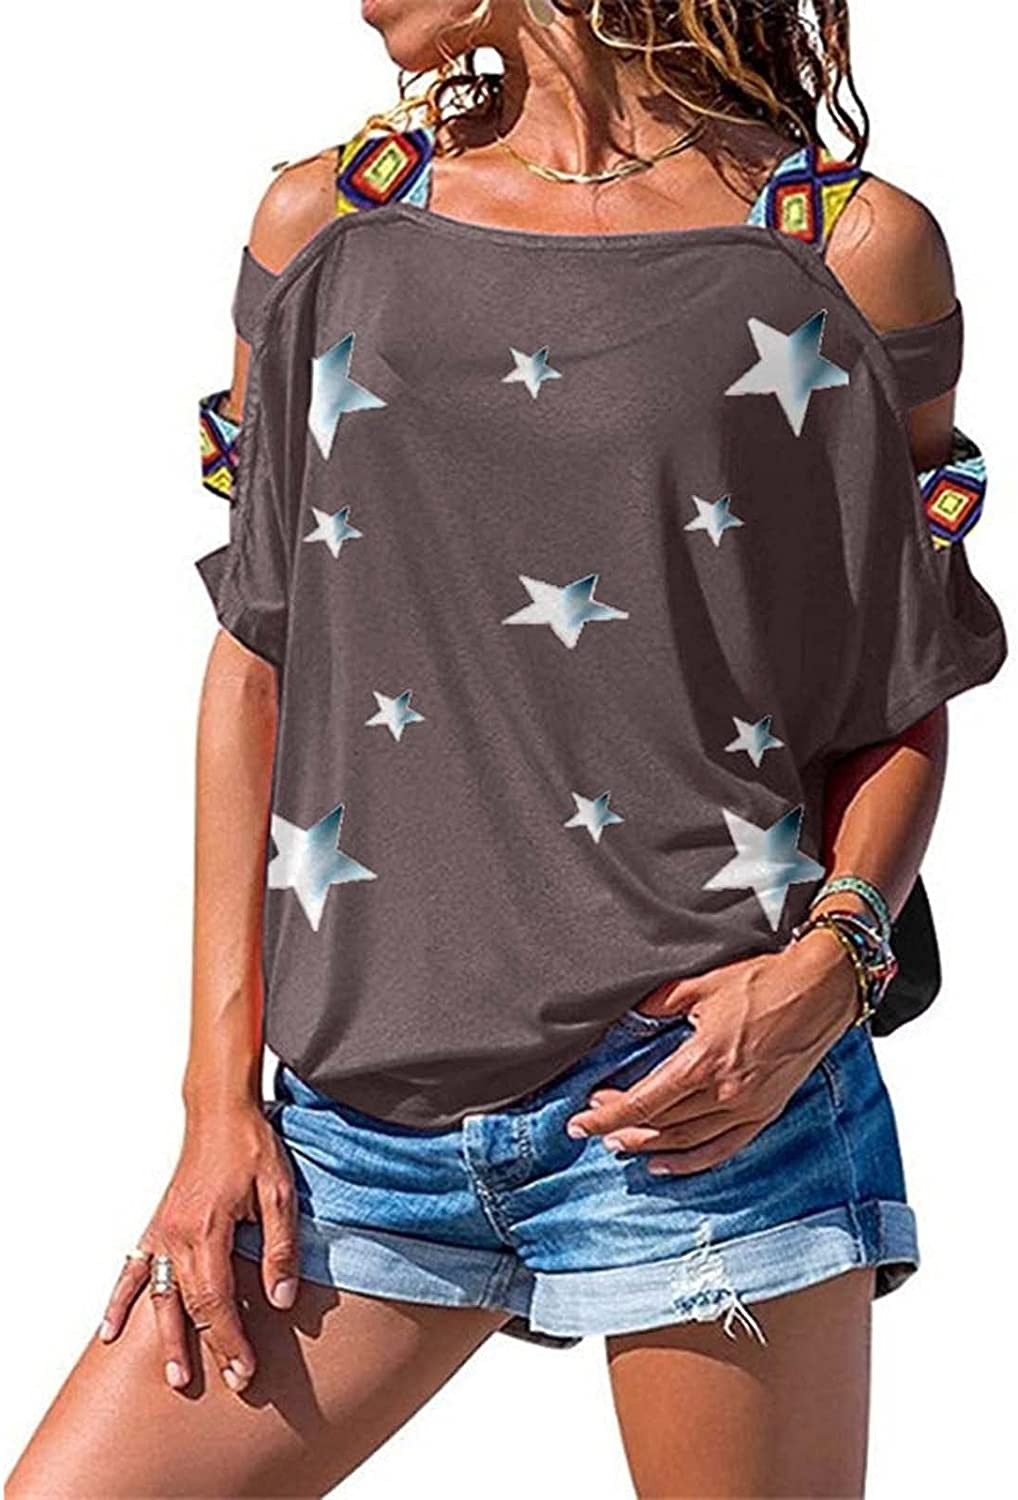 iQKA Women's Cold Shoulder Tops Star Print Graphic Shirt HollowOut Sleeve Strappy T-Shirt Camisole Blouse